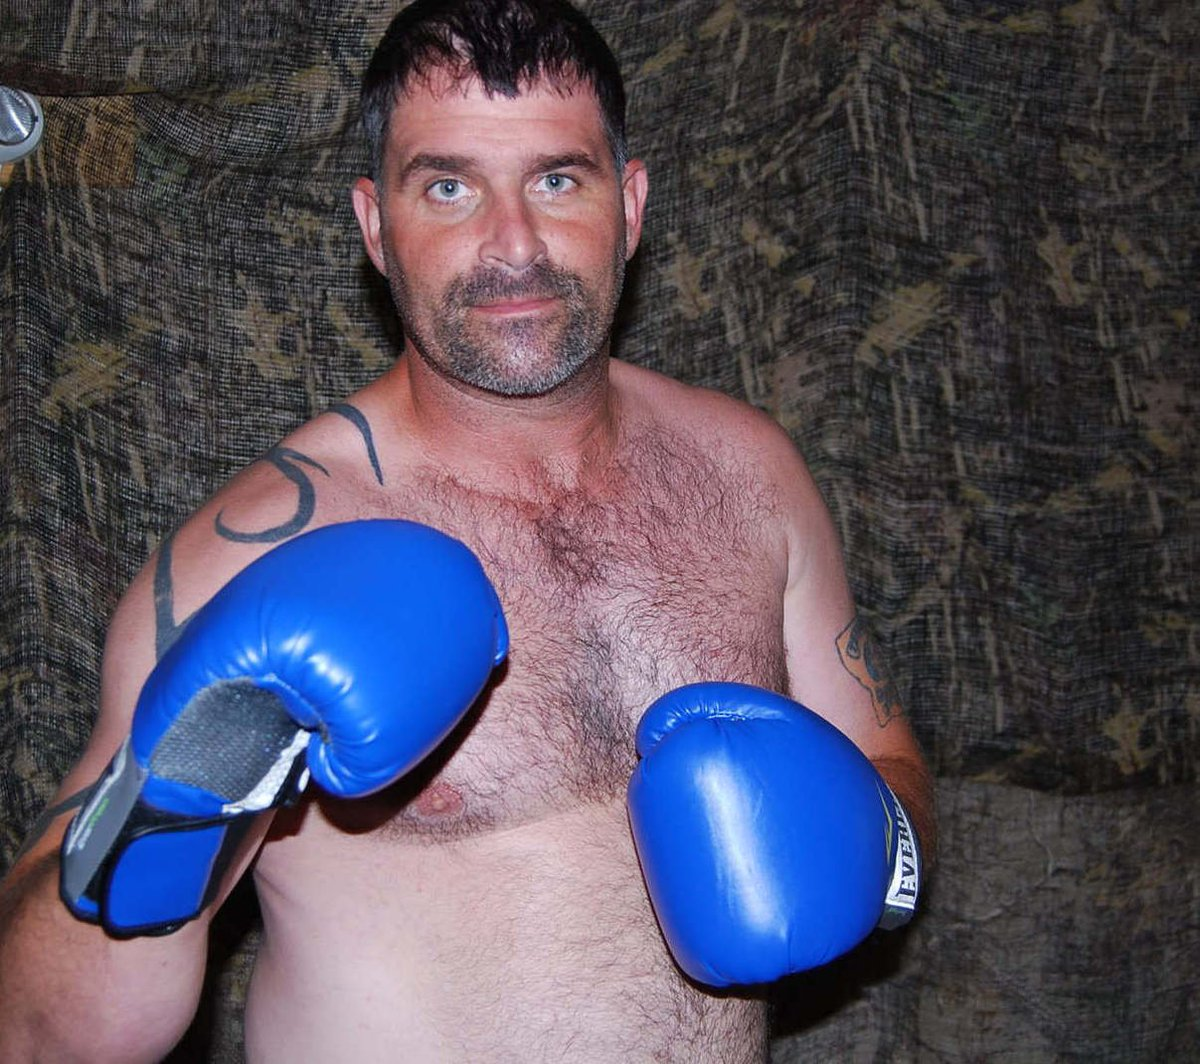 LOOK LIKE THIS FIGHTER GUY? get MONTHLY SALARY from  http:// ModelingPortfolio.org  &nbsp;   #moustache #men #wanted #boxers #boxing #MMA #strong #hairychest #bears #guys #fitness #home #gym #workout #daddies #beefcakes<br>http://pic.twitter.com/BaIqKg66jG